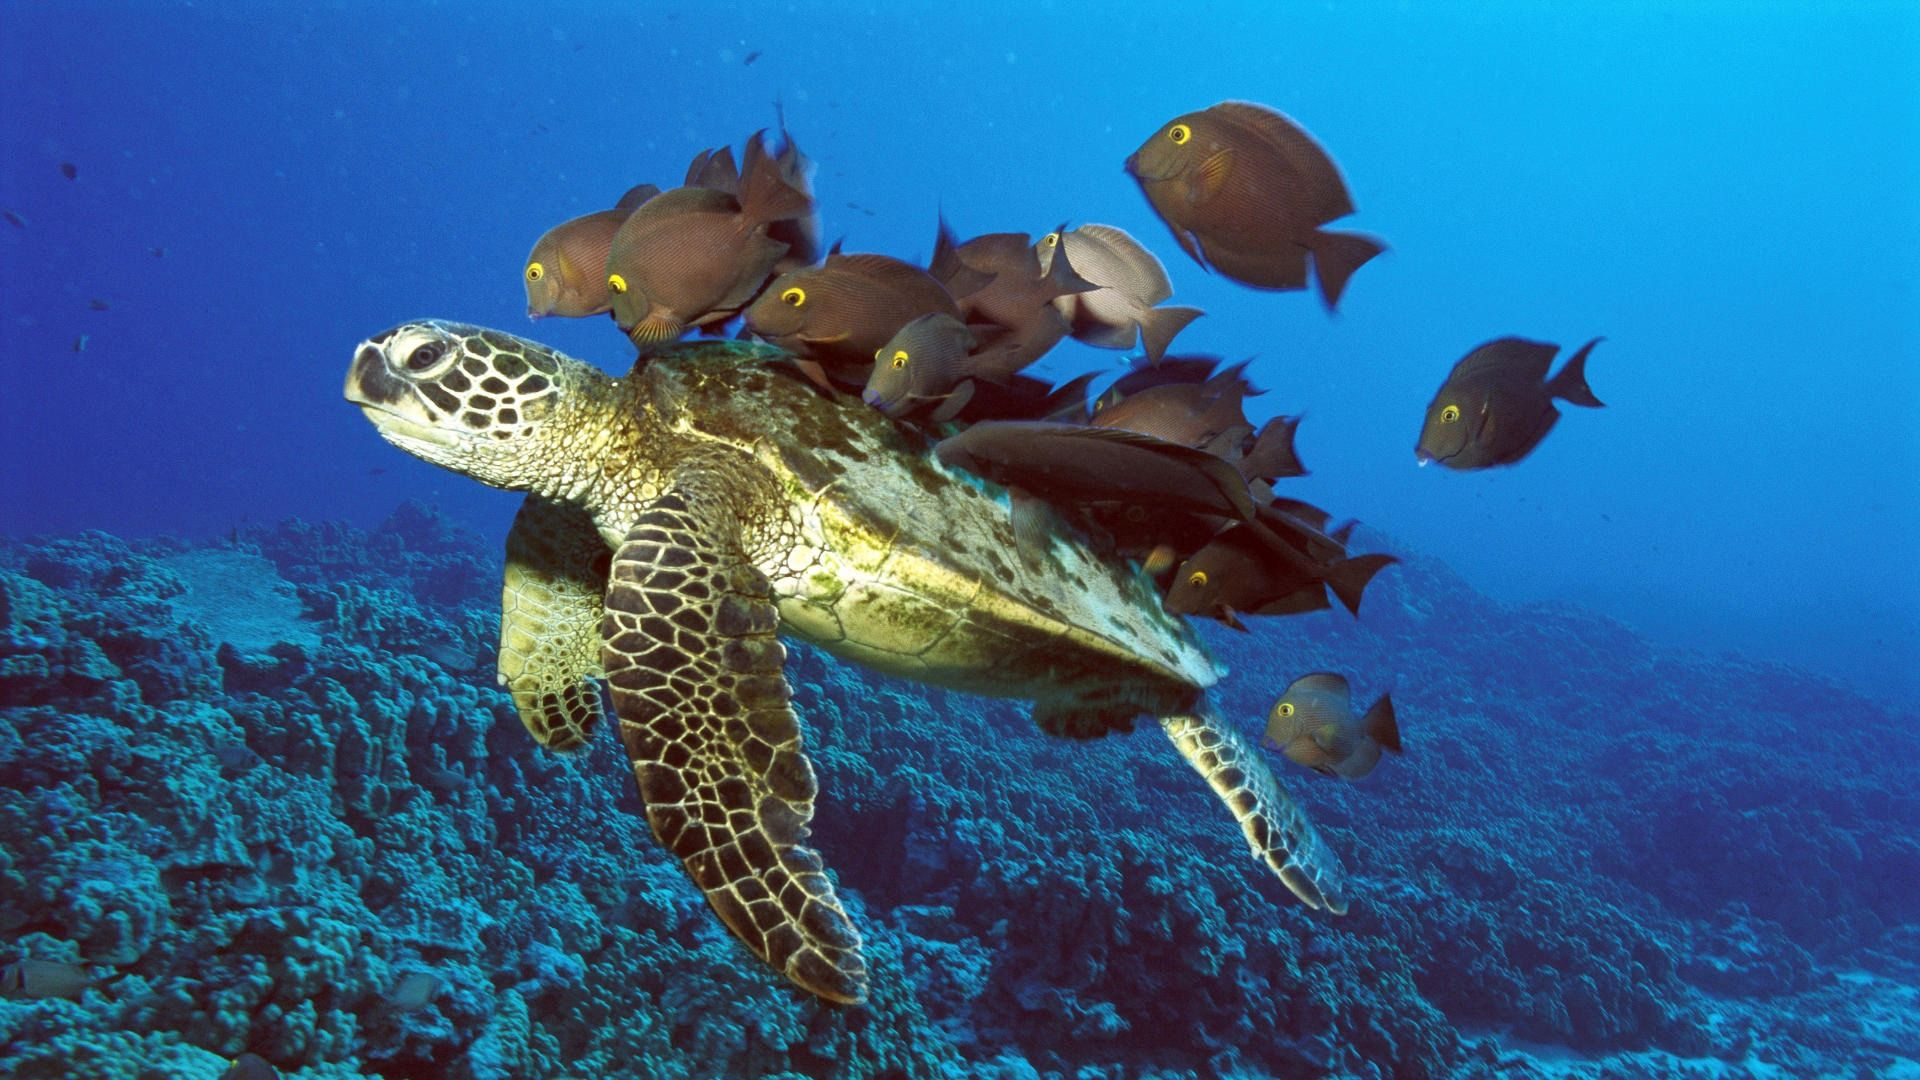 56869 download wallpaper Animals, Underwater Turtle, Underwater Tortoise, Underwater World, Fishes screensavers and pictures for free